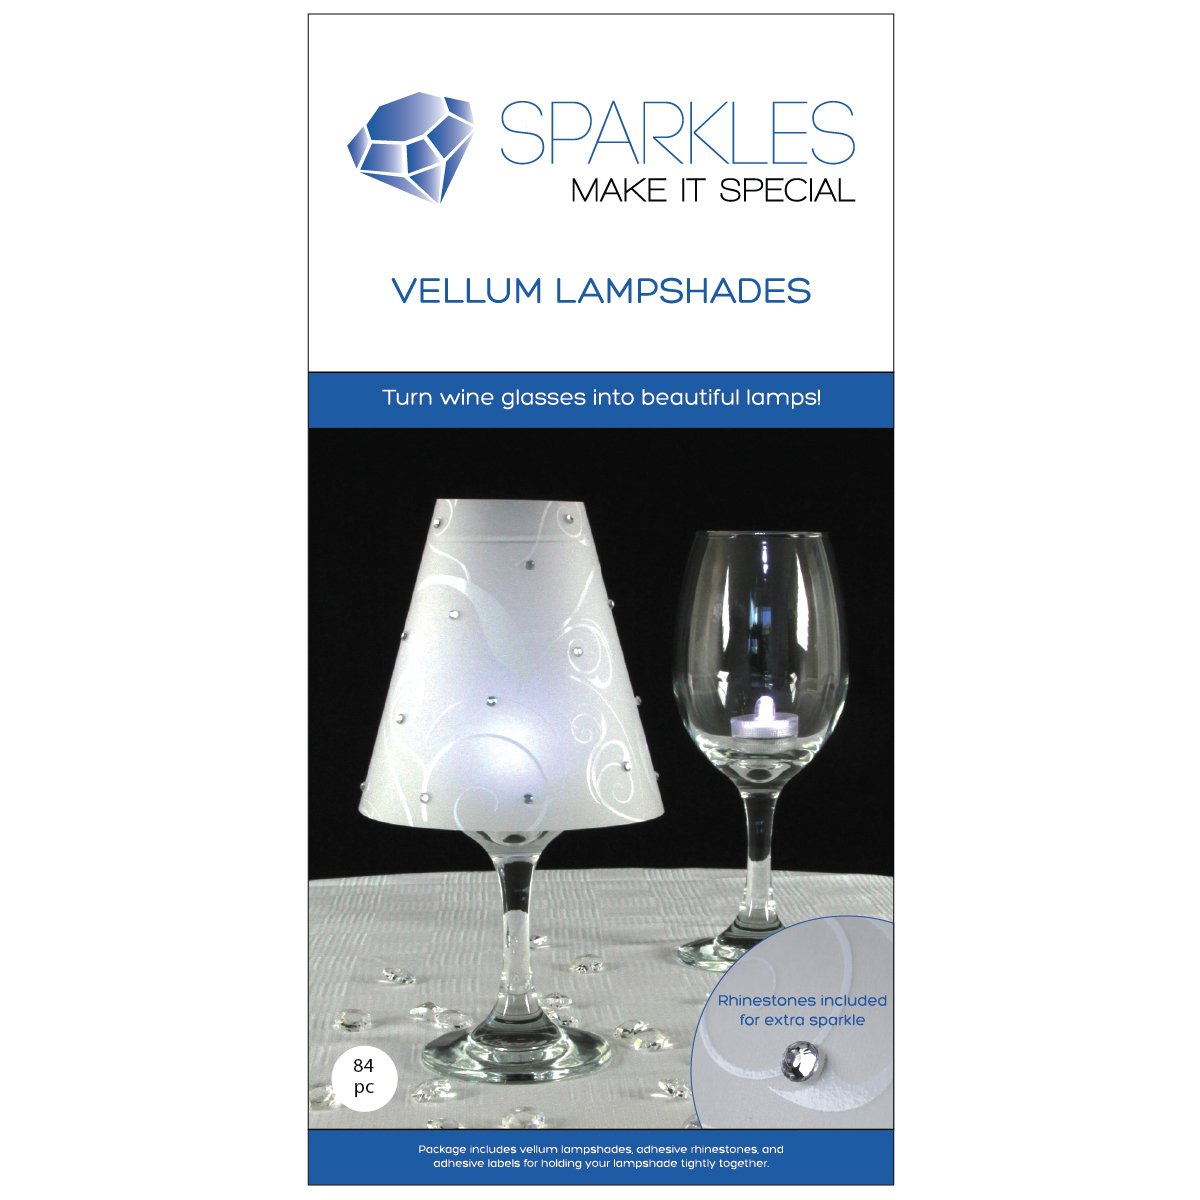 Sparkles Make It Special 84 pc Wine Glass Lamp Shades with Rhinestones - Wedding Party Table Centerpiece Decoration - White Vellum Swirl Print by Sparkles Make It Special